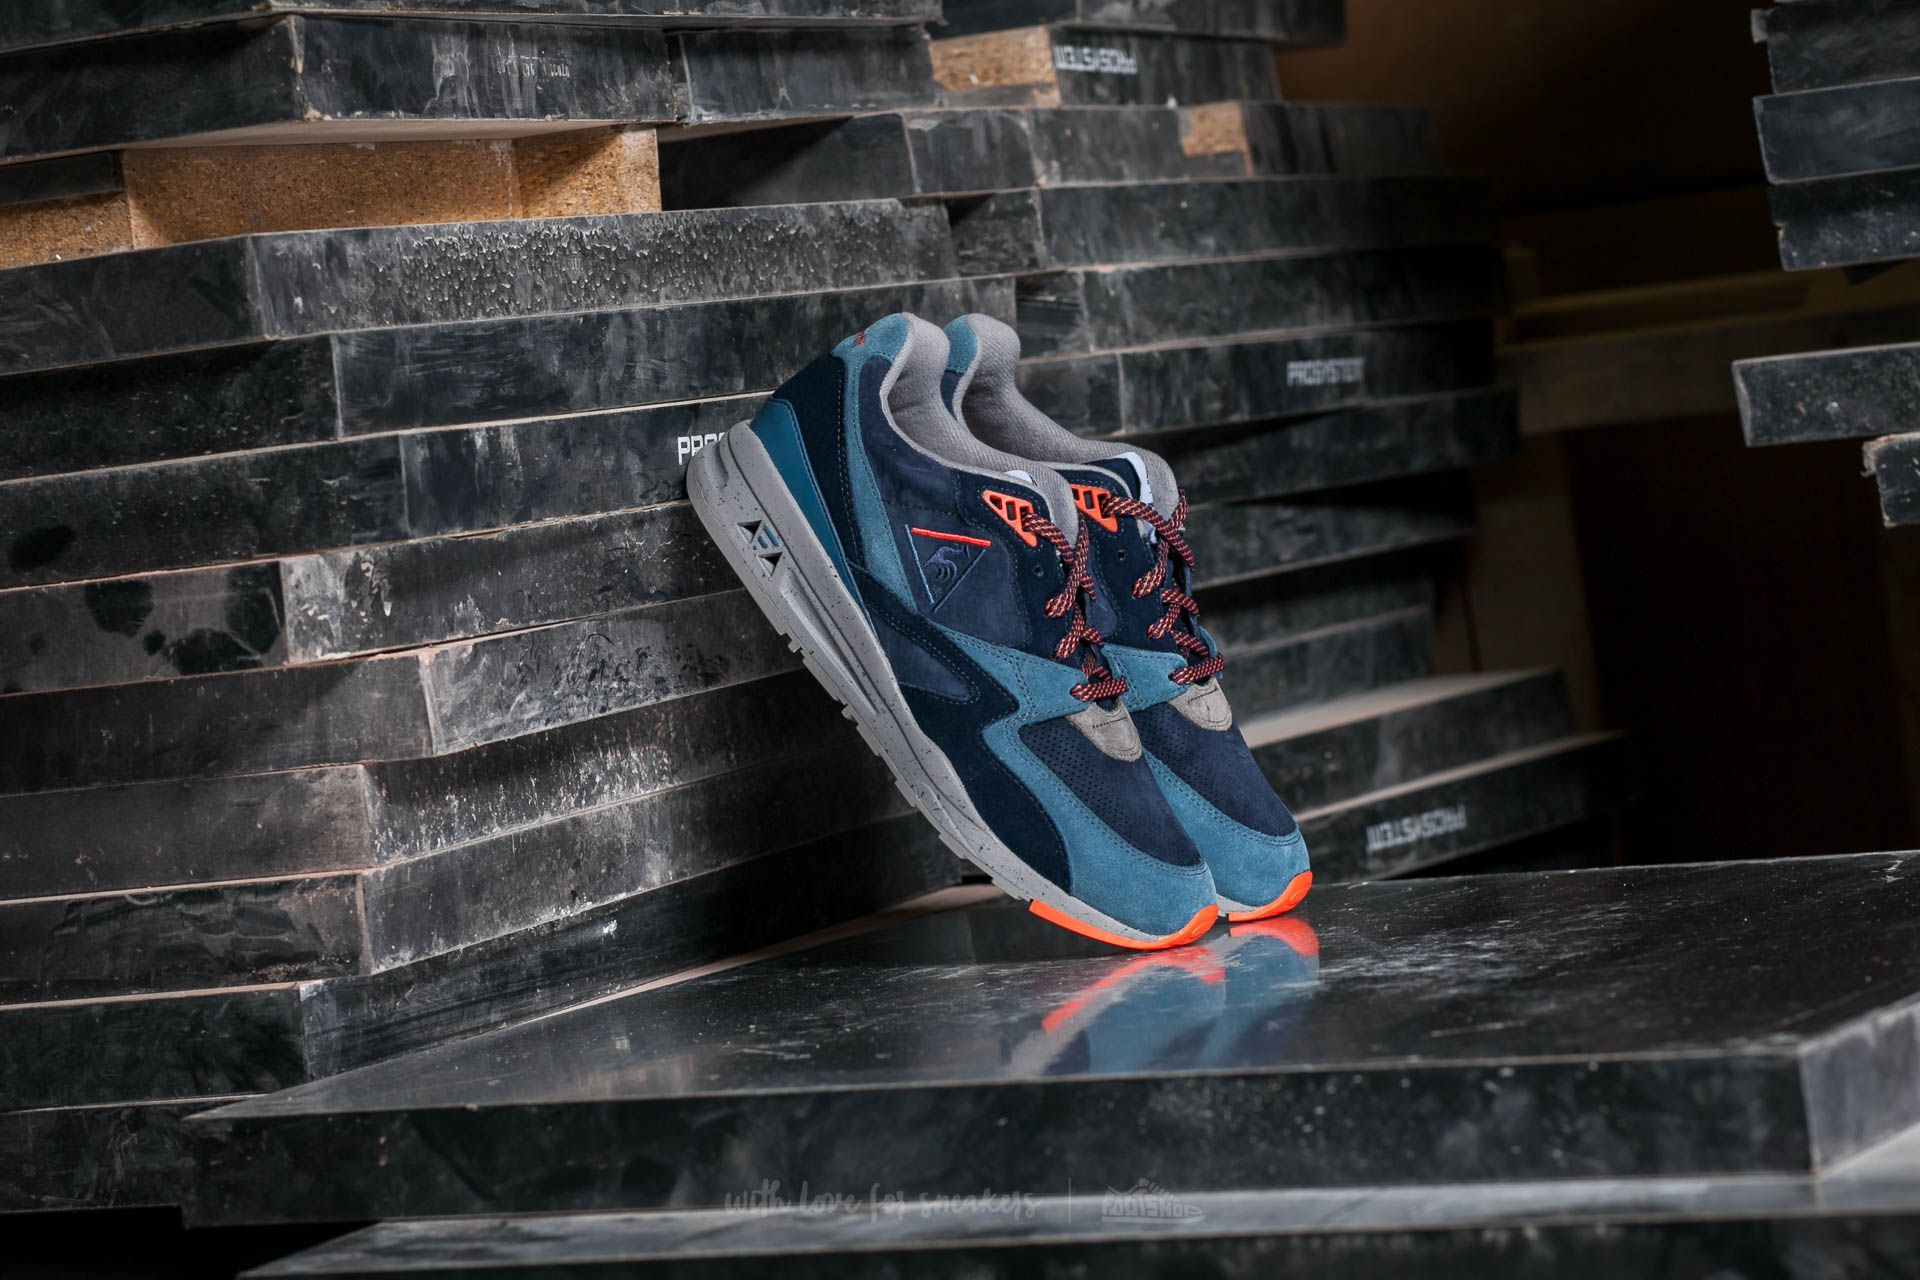 Le Coq Sportif R 800 90´S Outdoor Dress Blue/ Tigerl - 12487